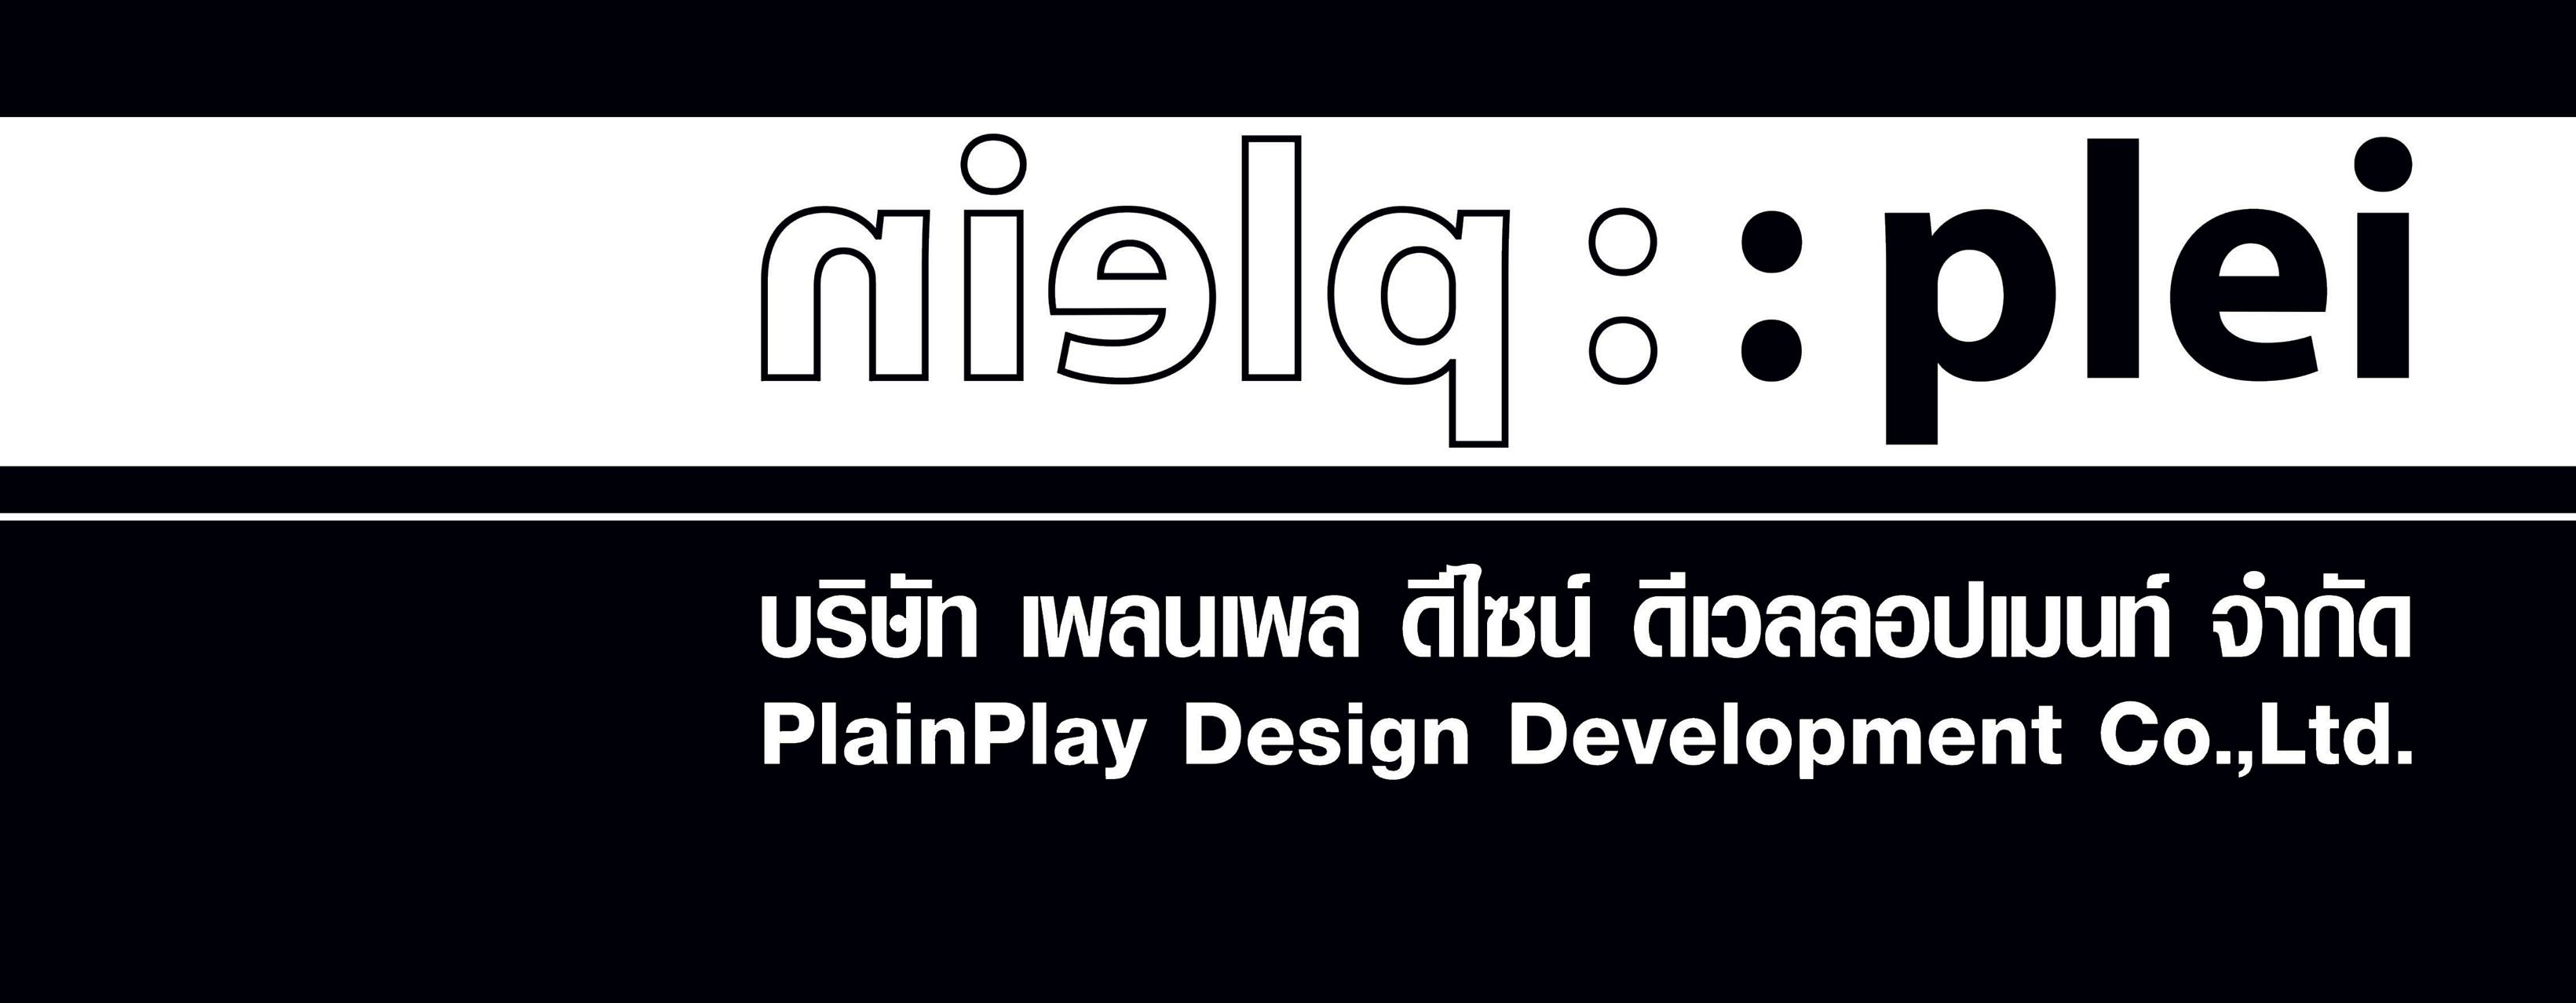 Plainplay Design Development